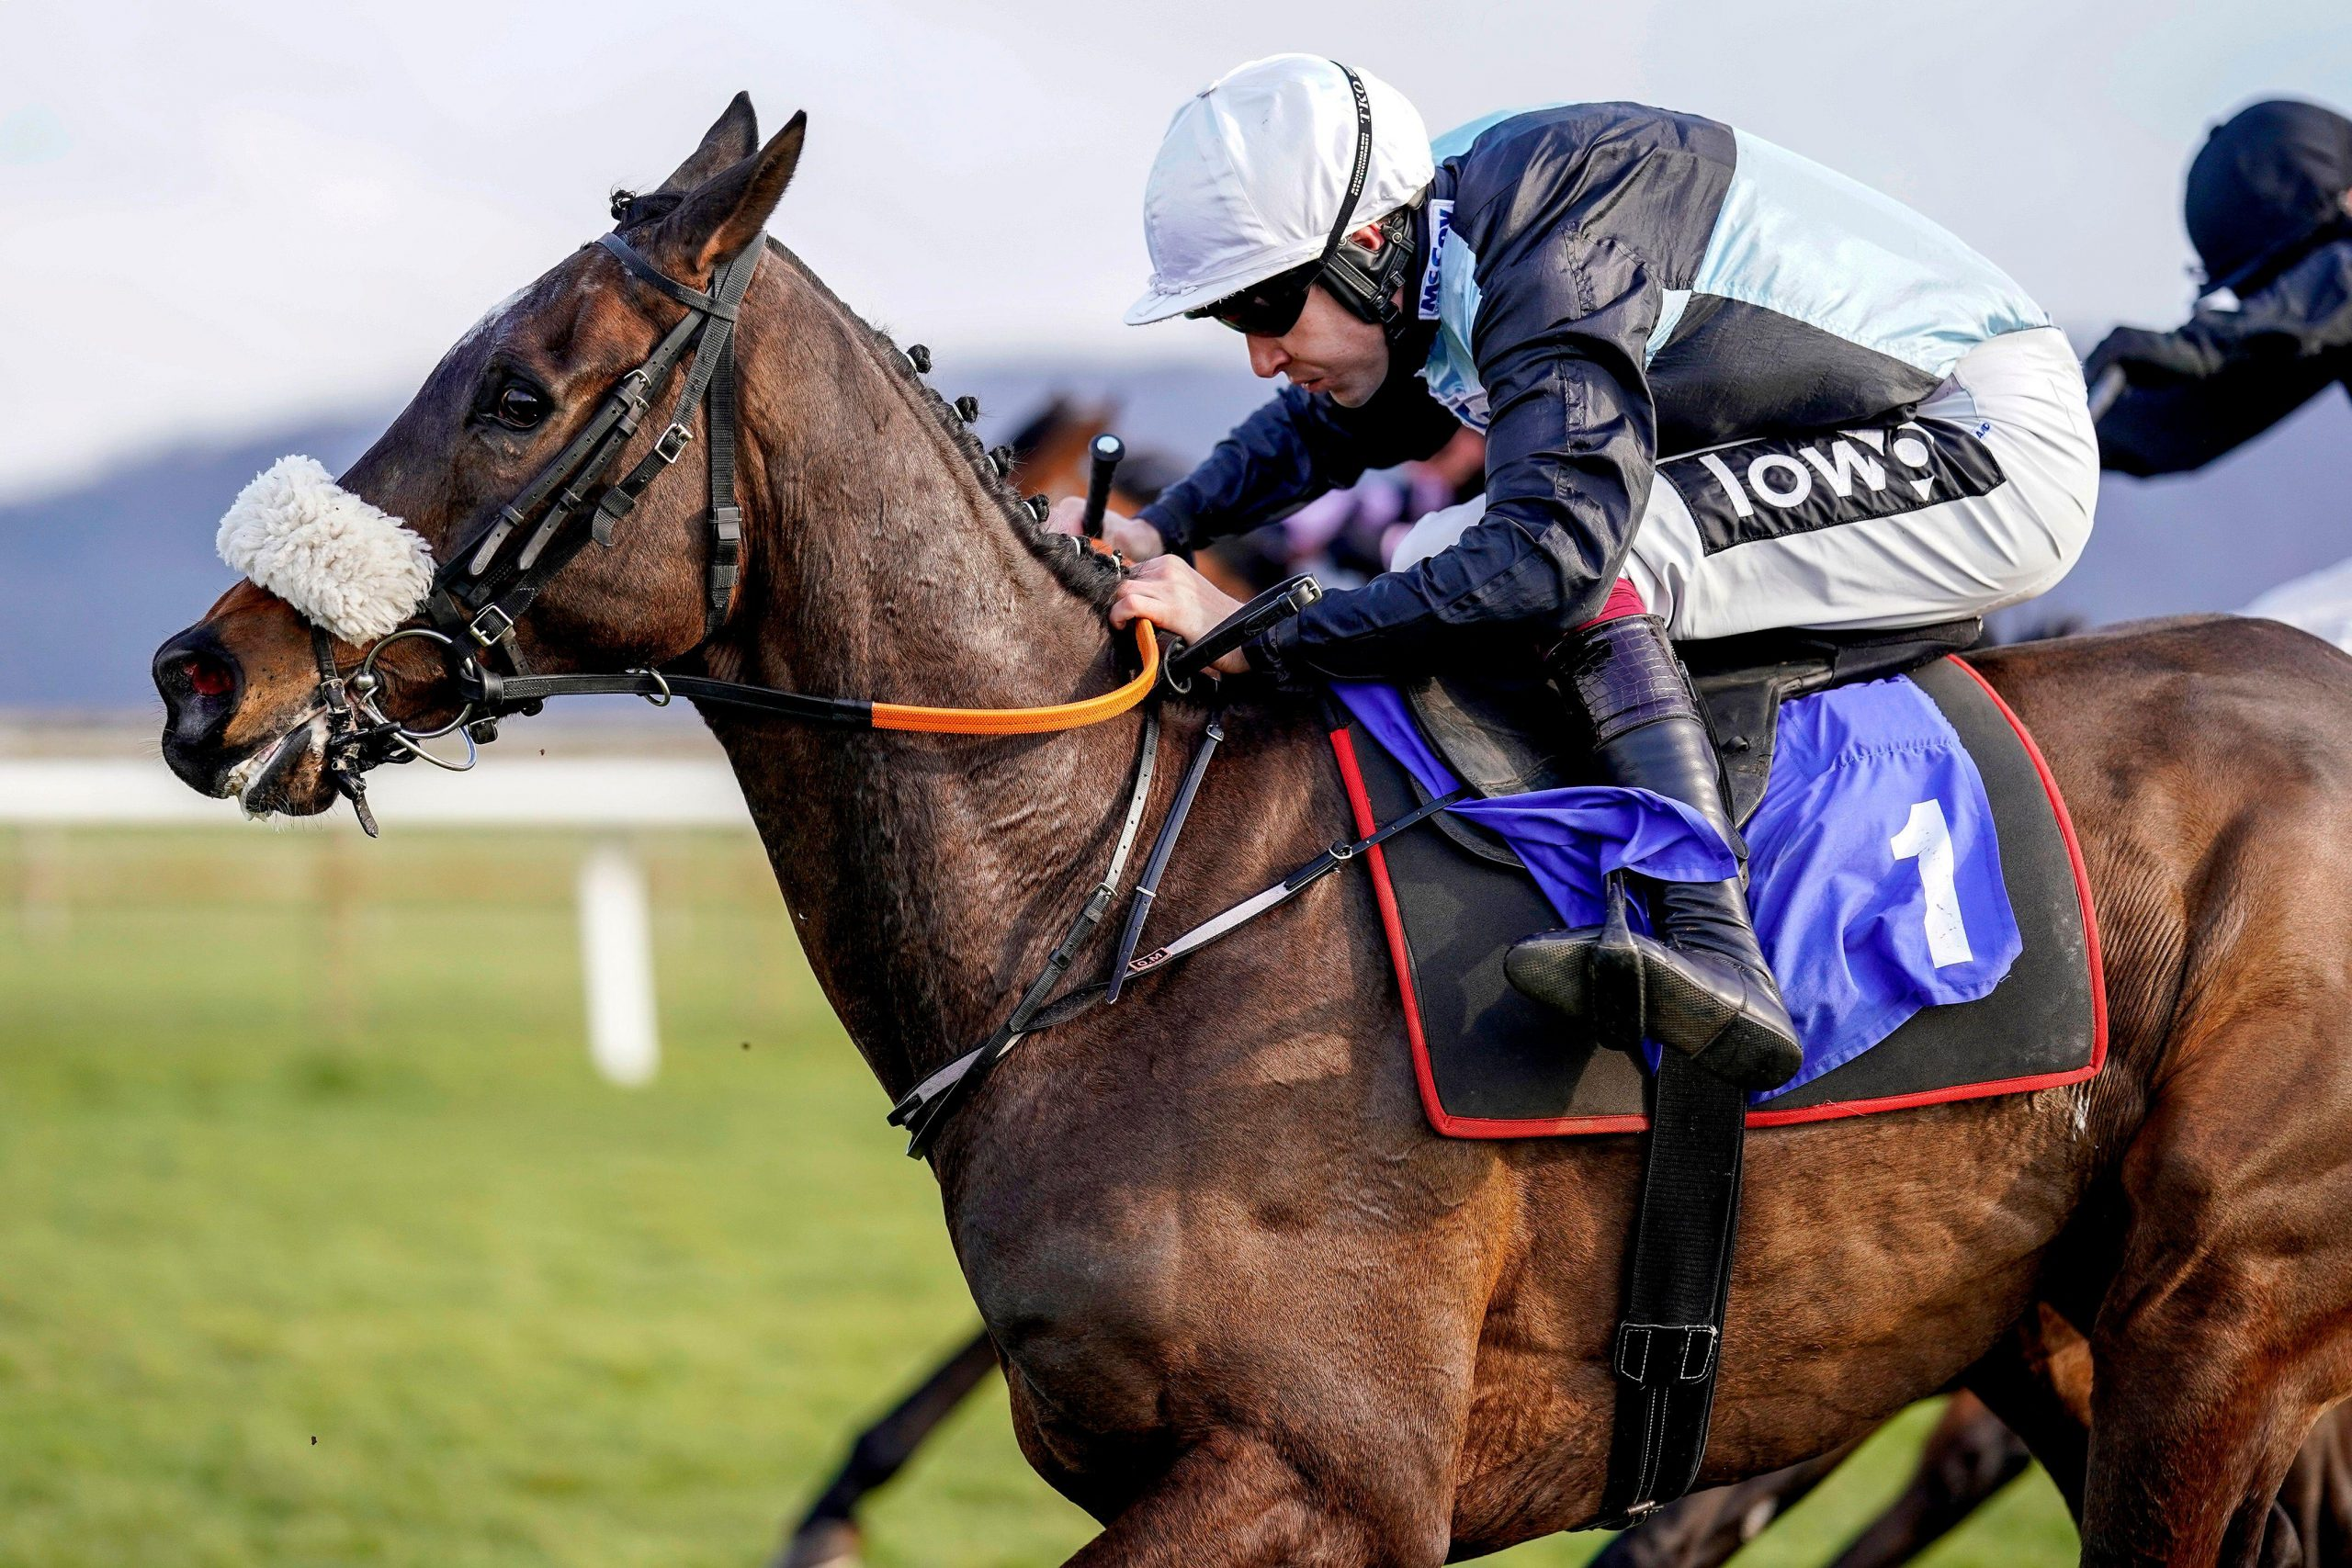 Copperless ridden by Aidan Coleman on their way to winning the Ray Wonnacott 80 And Not Out Handicap Hurdle at Taunton Racecourse. Picture date: Tuesday March 23, 2021.